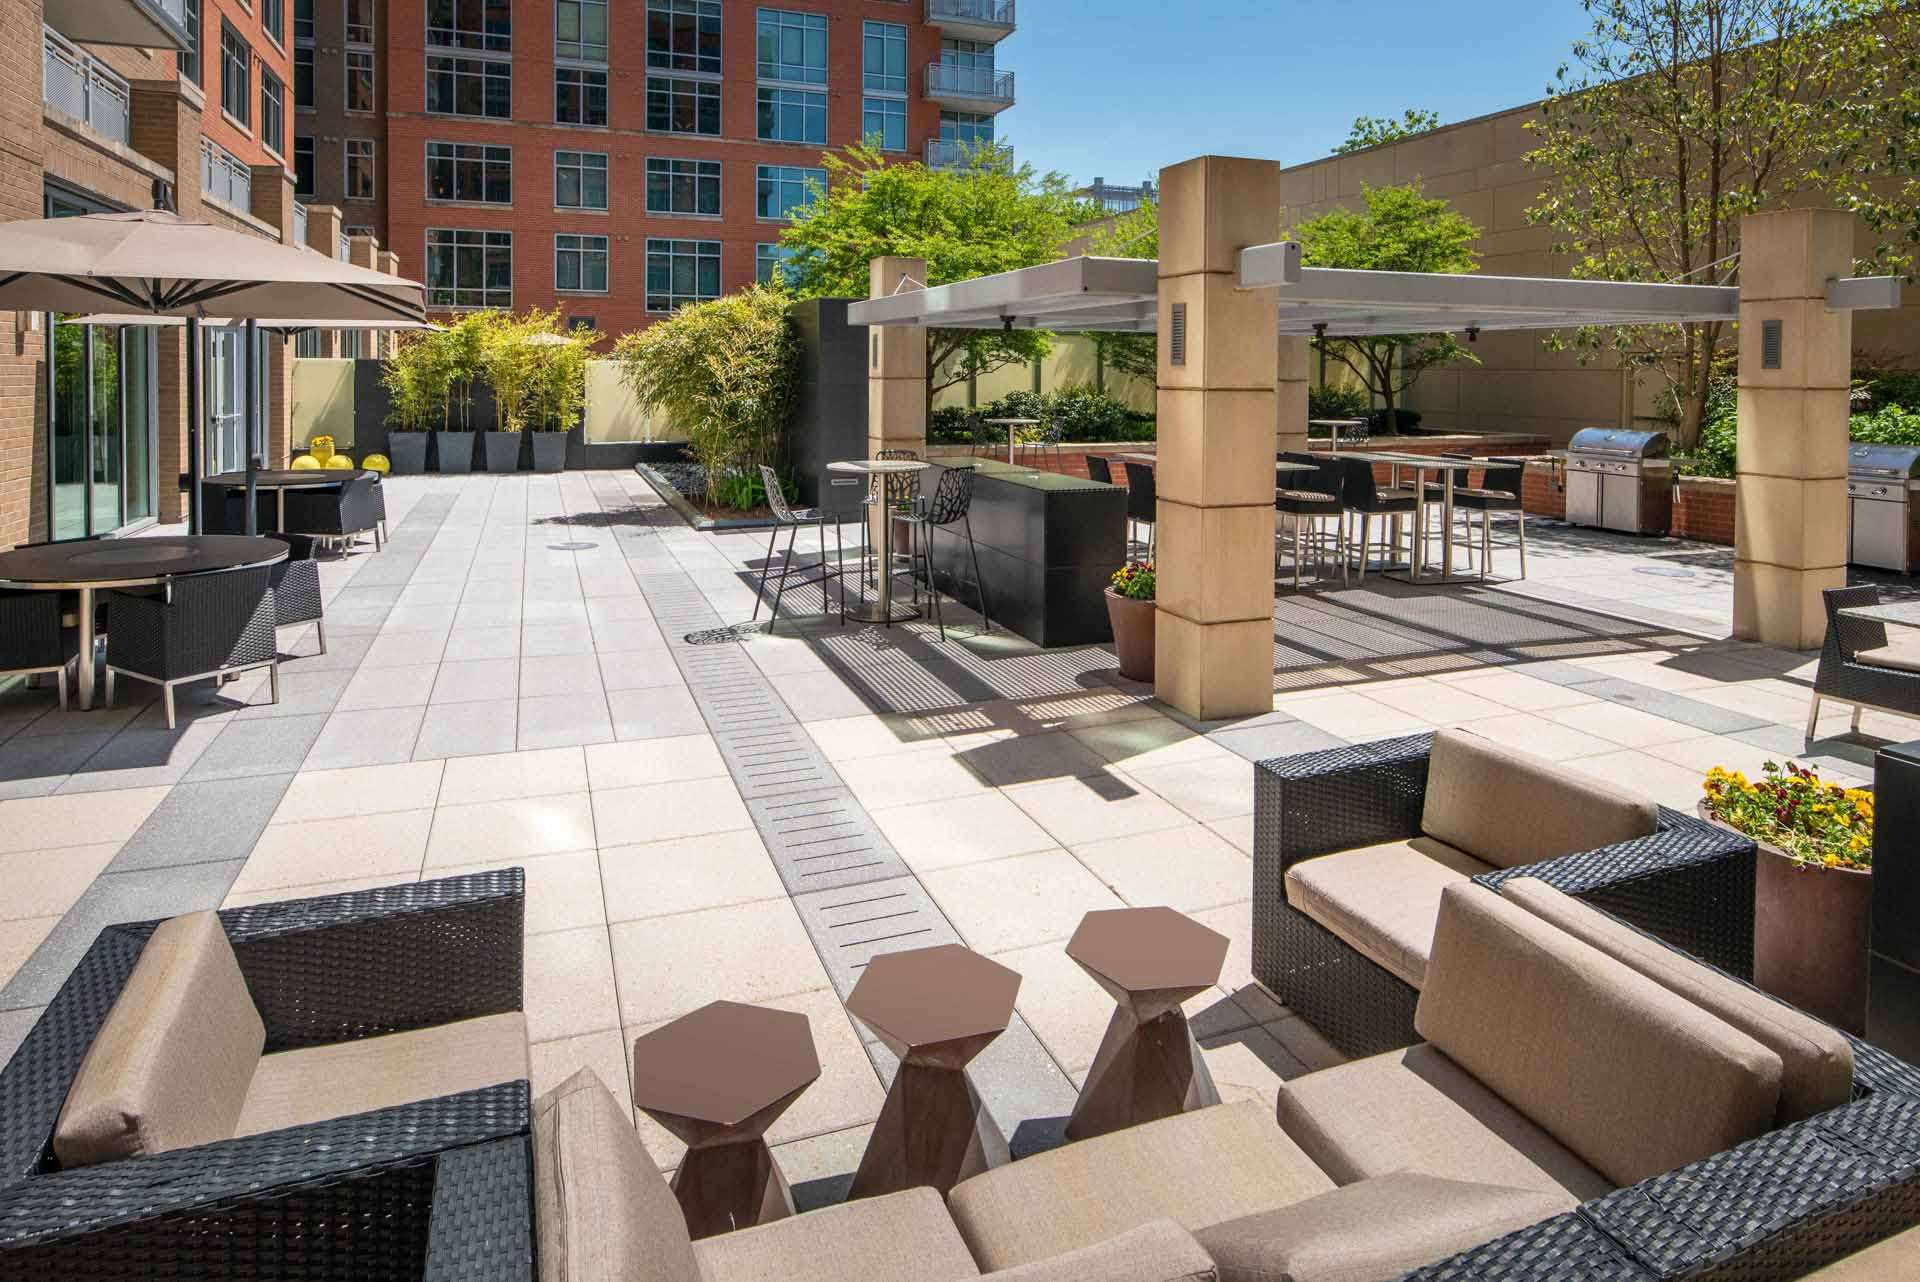 View of large patio with shaded grilling areas, umbrellas, dining space and sofas